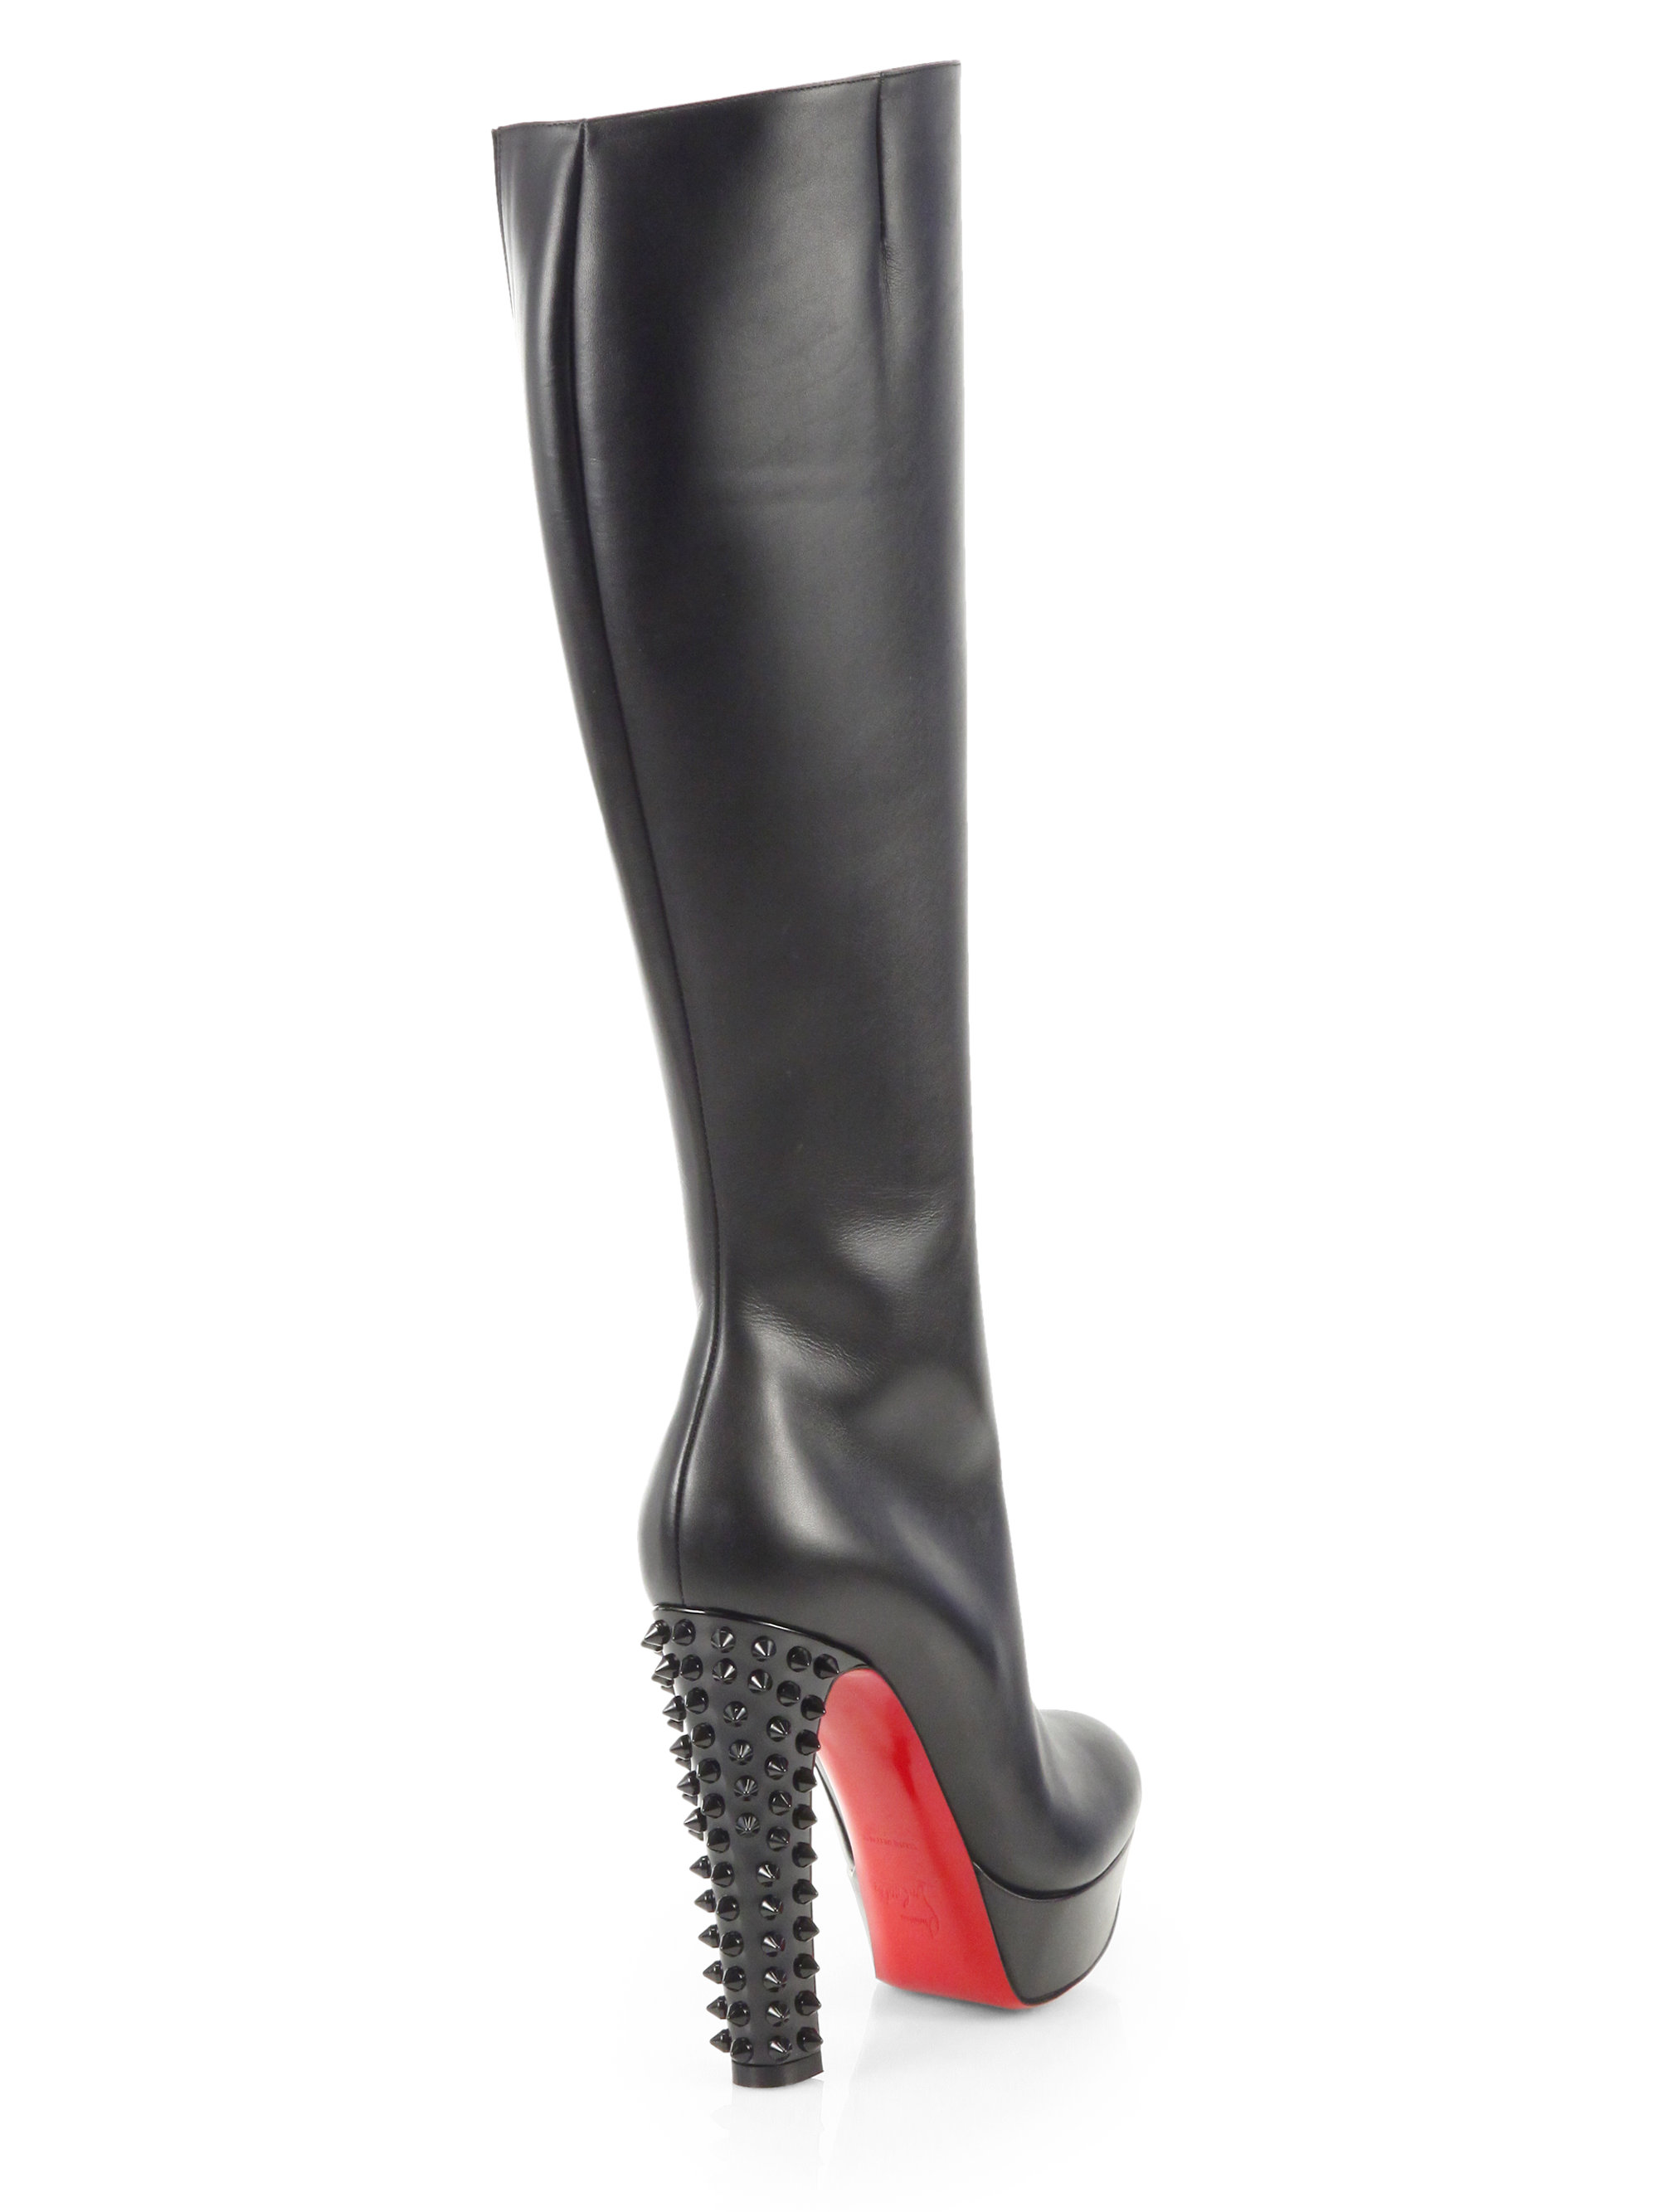 authentic online Christian Louboutin Taclou Knee-High Boots professional online cheap footlocker pictures footlocker finishline online Htl45